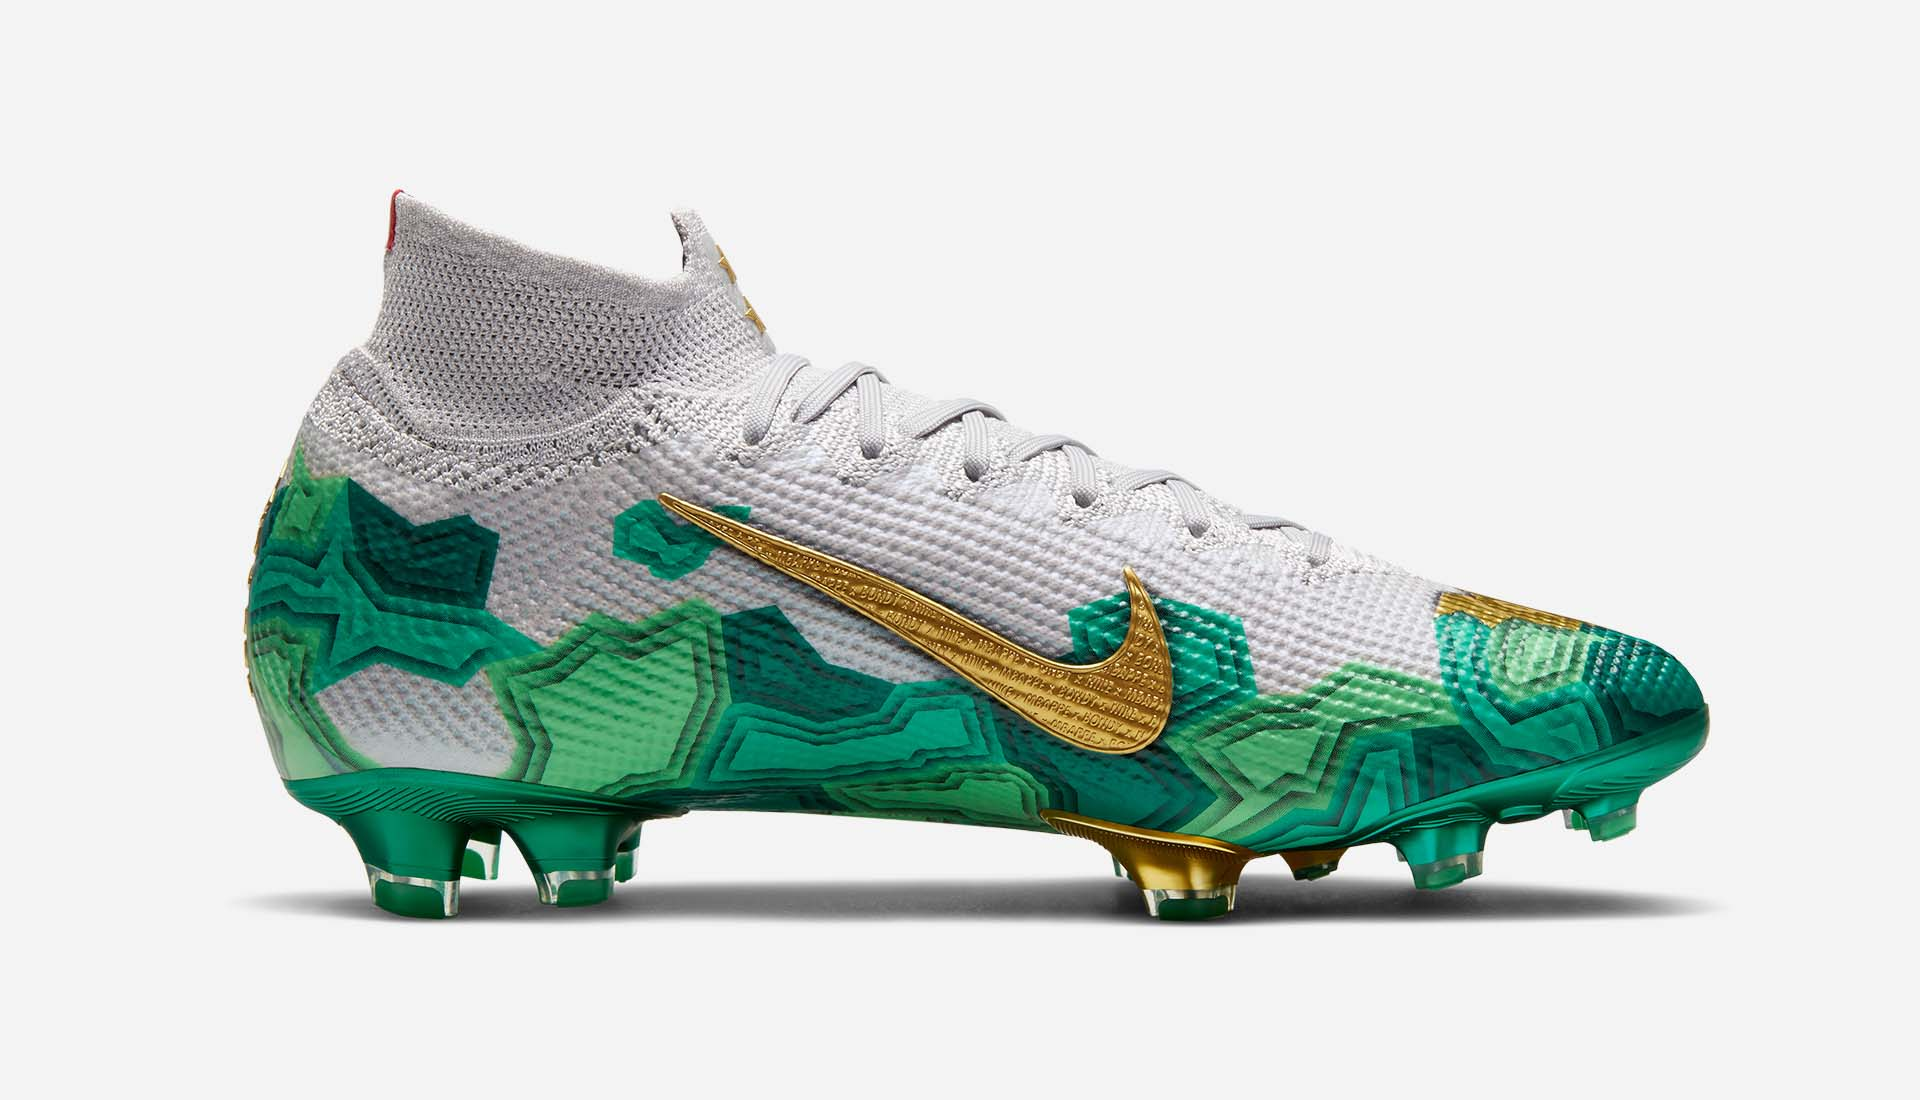 Nike Launch Kylian Mbappé's First Mercurial Collection - SoccerBible